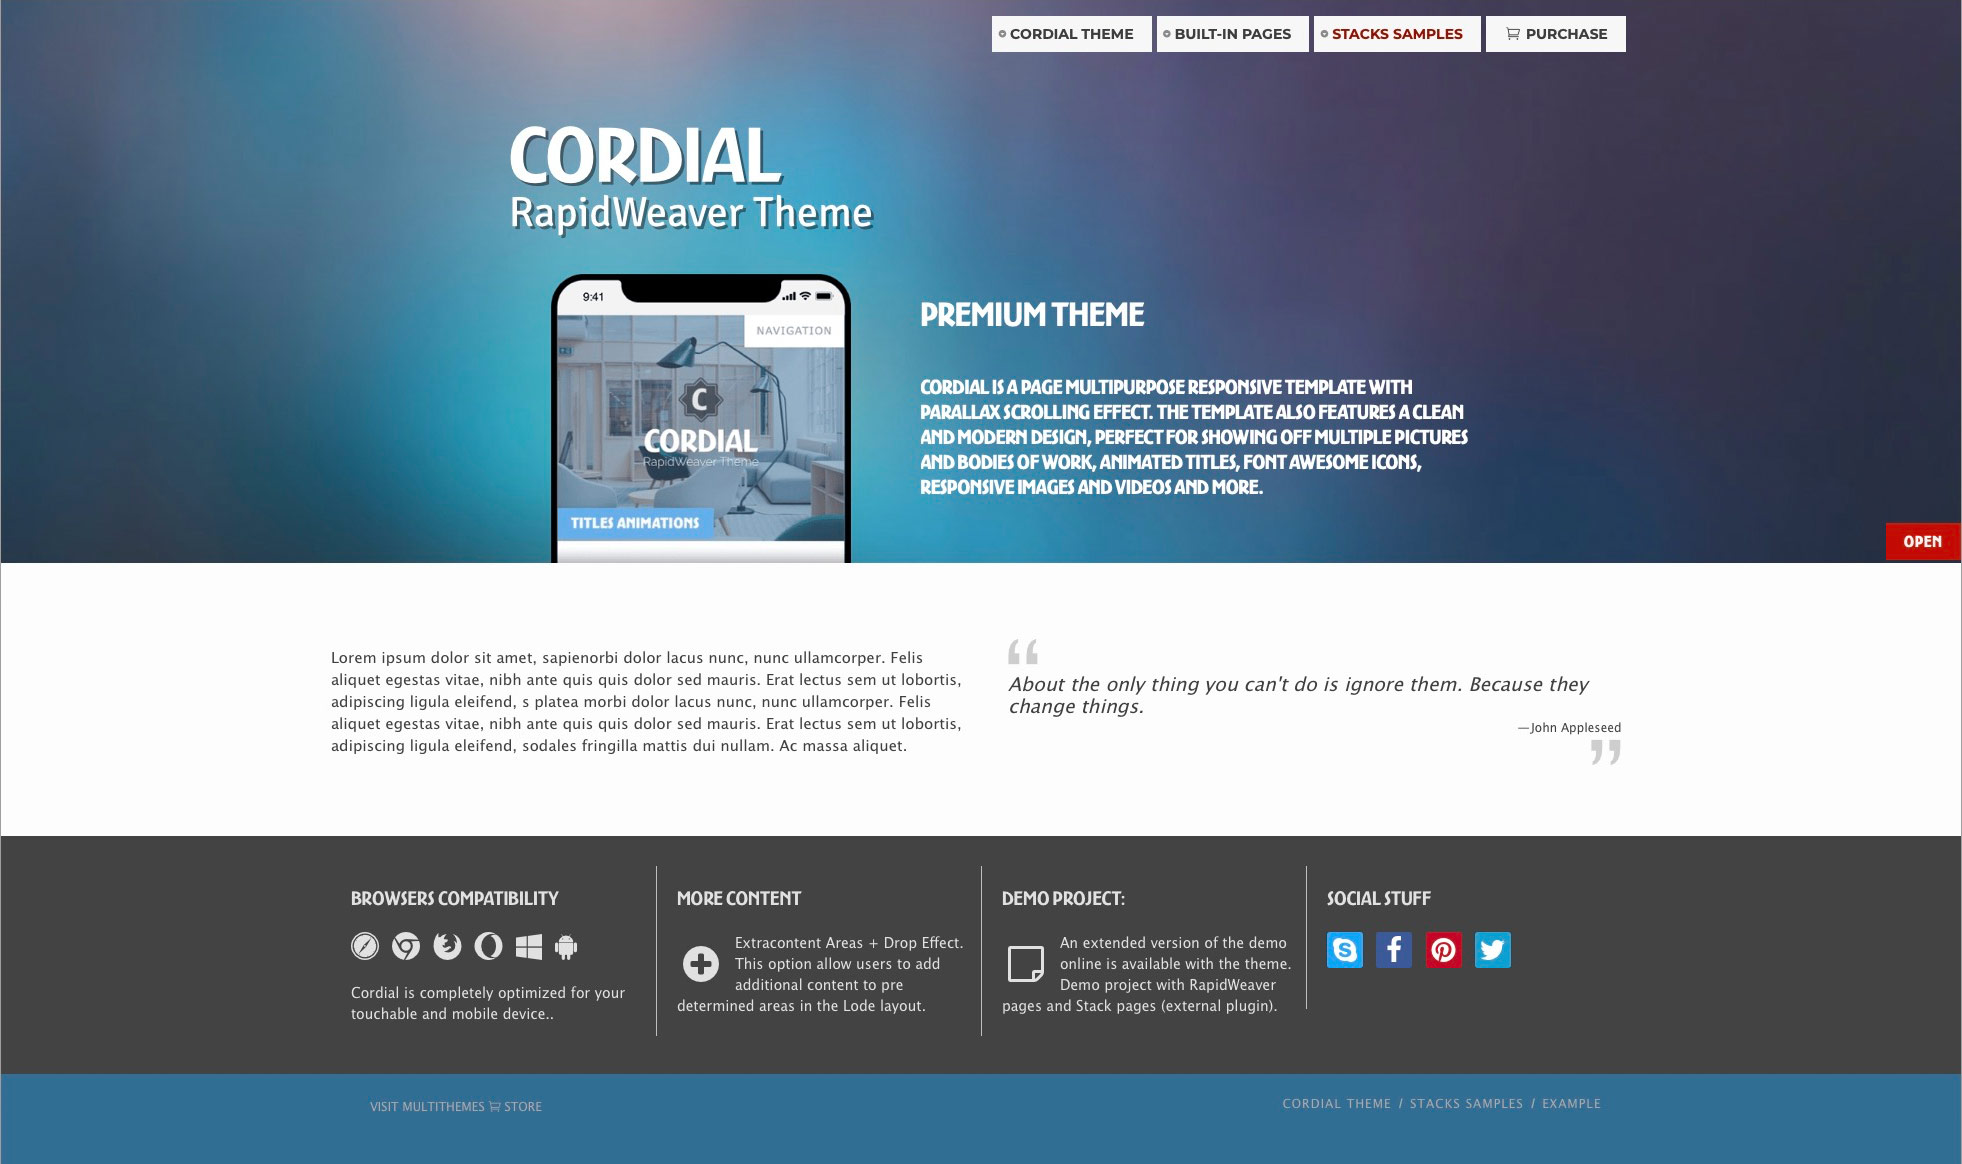 cordial_005